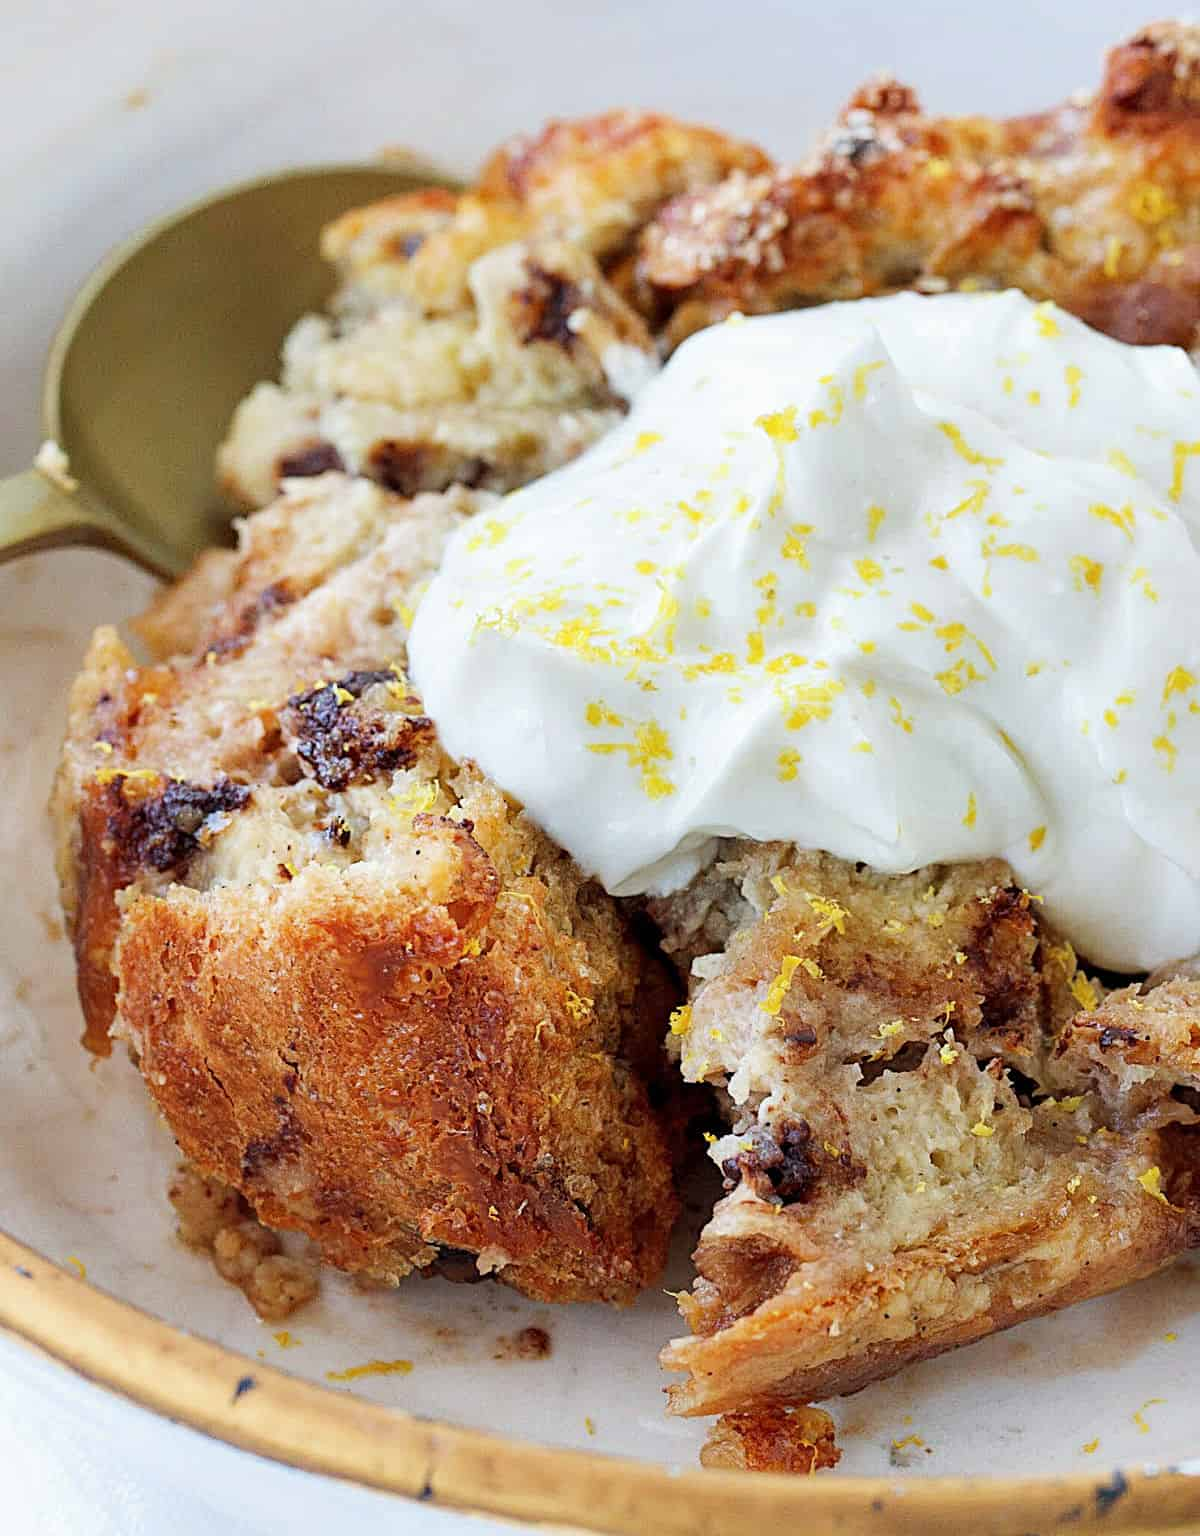 A serving of panettone bread pudding with whipped cream, white gold bowl and spoon